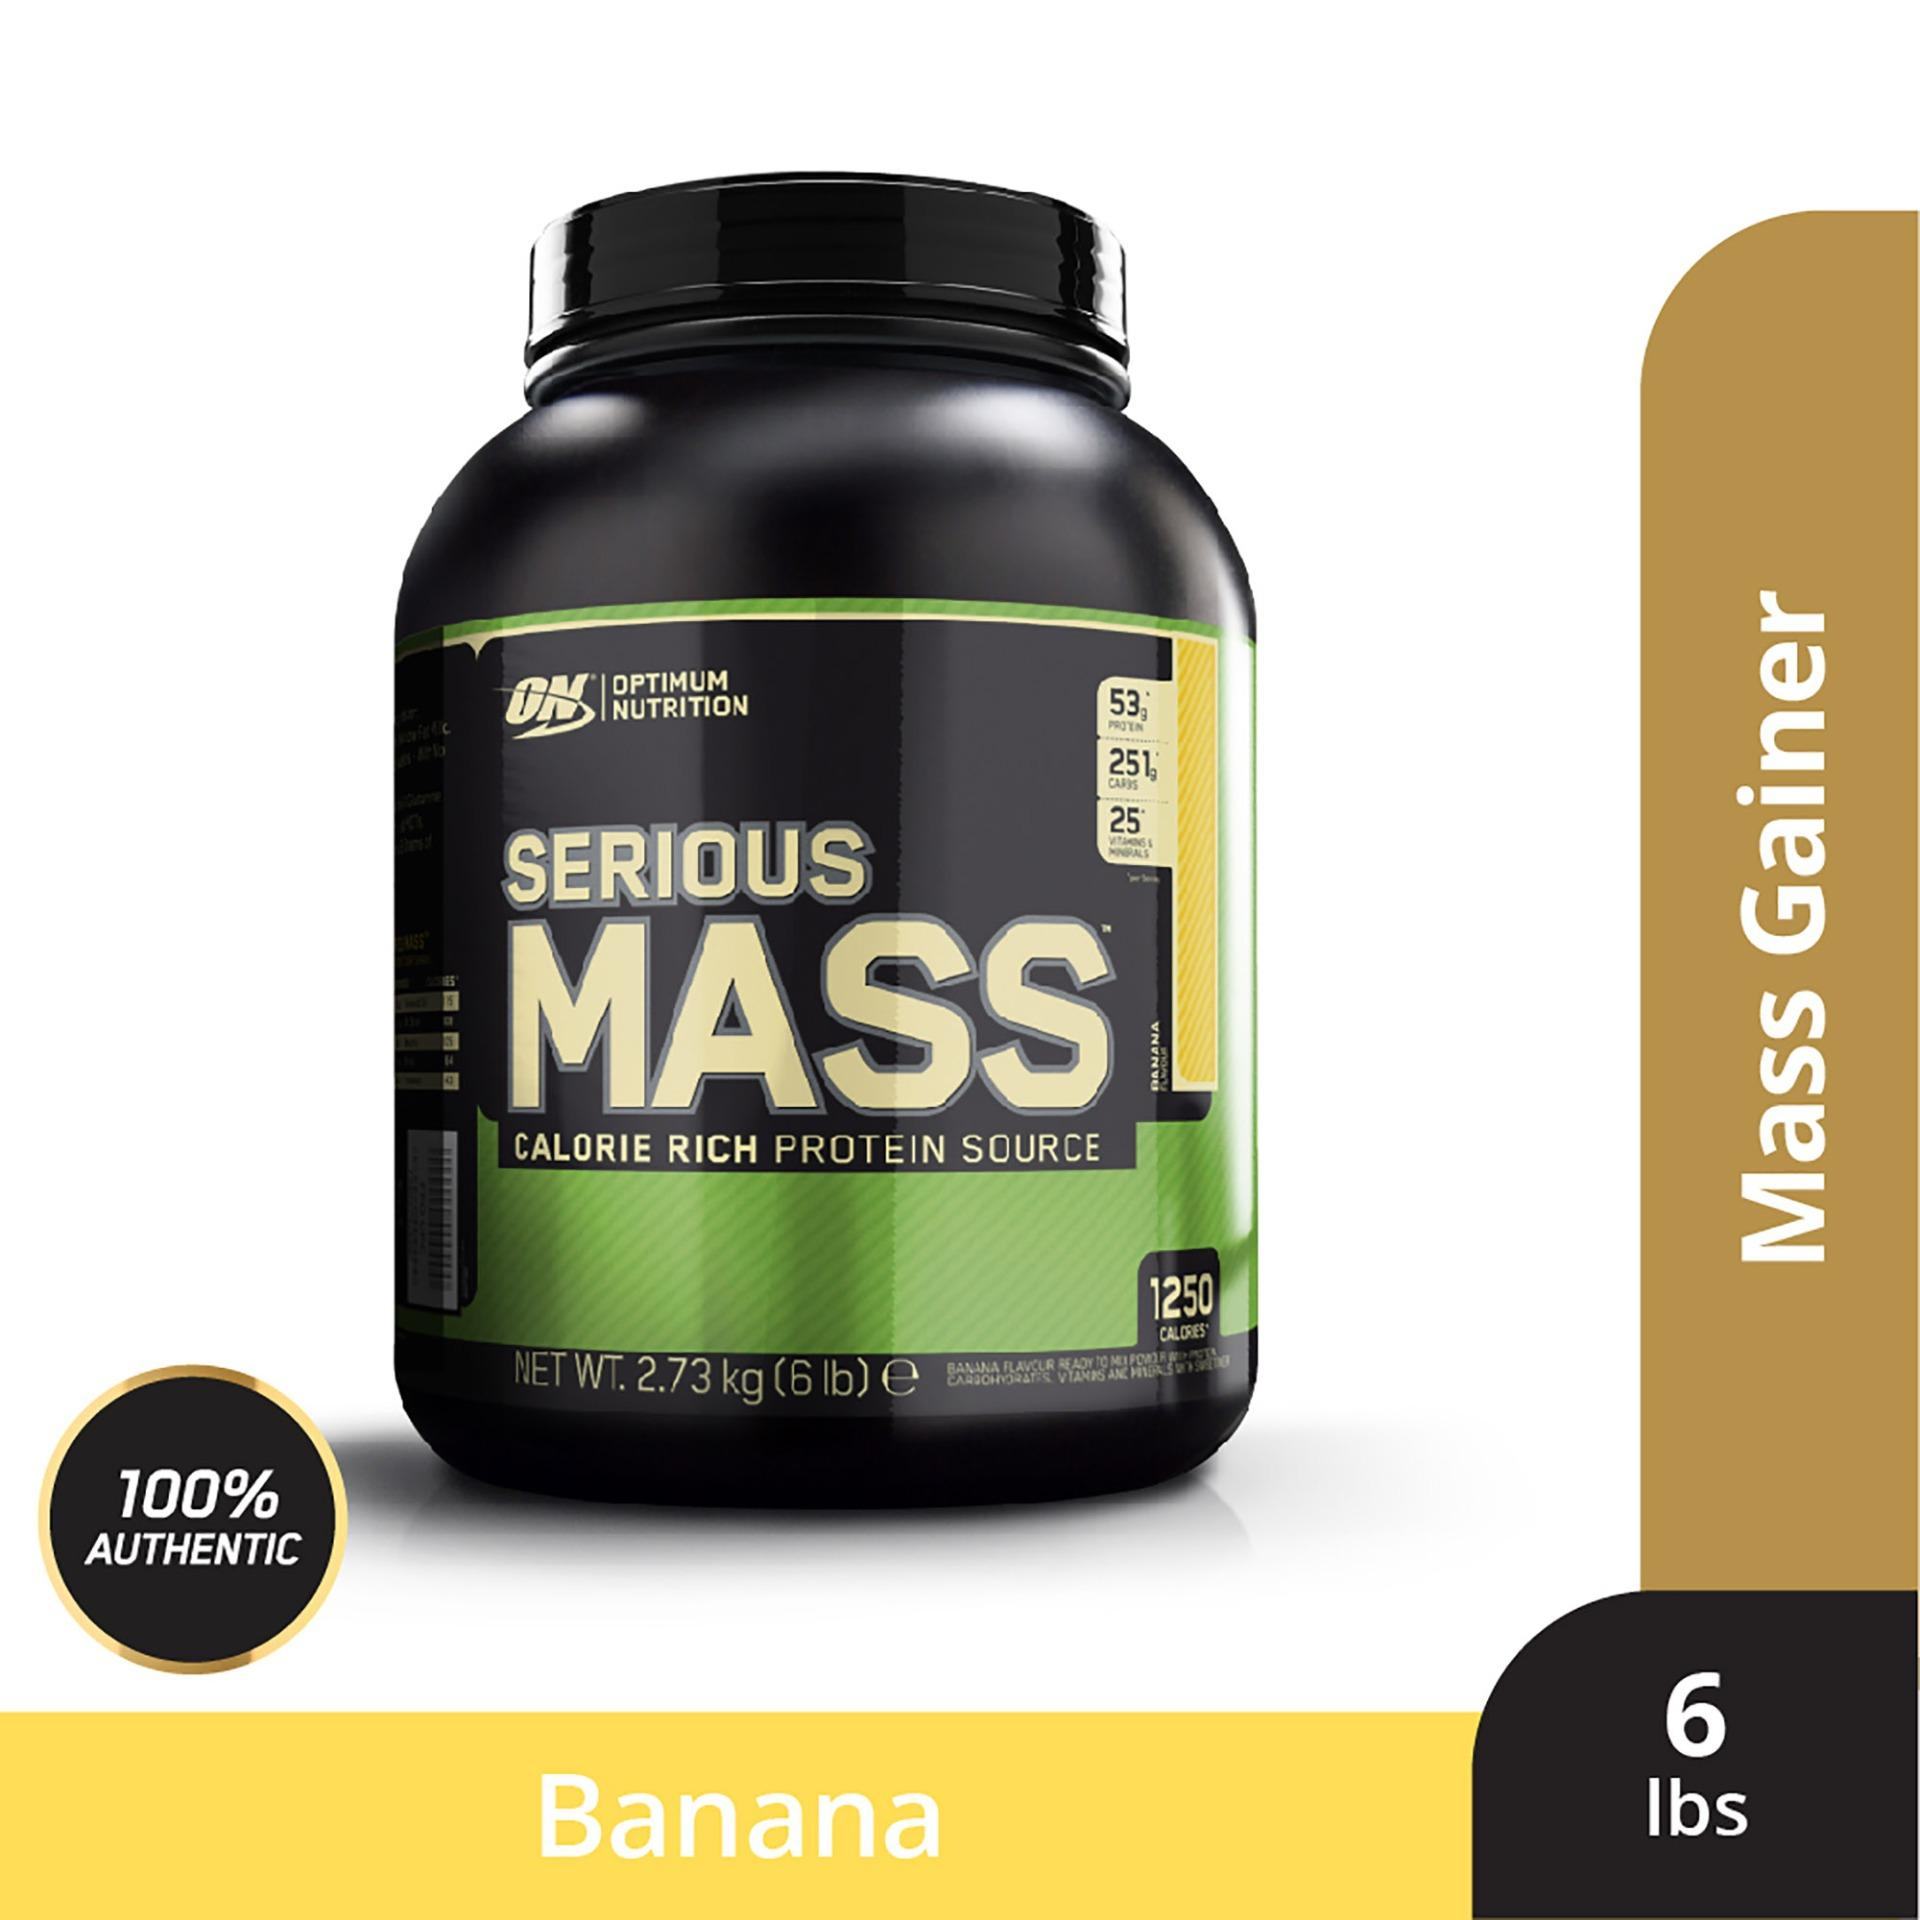 Optimum Nutrition Philippines Price List Ultimate Bcaa 500mg 120 Caps Serious Mass Gainer 6 Lbs Banana